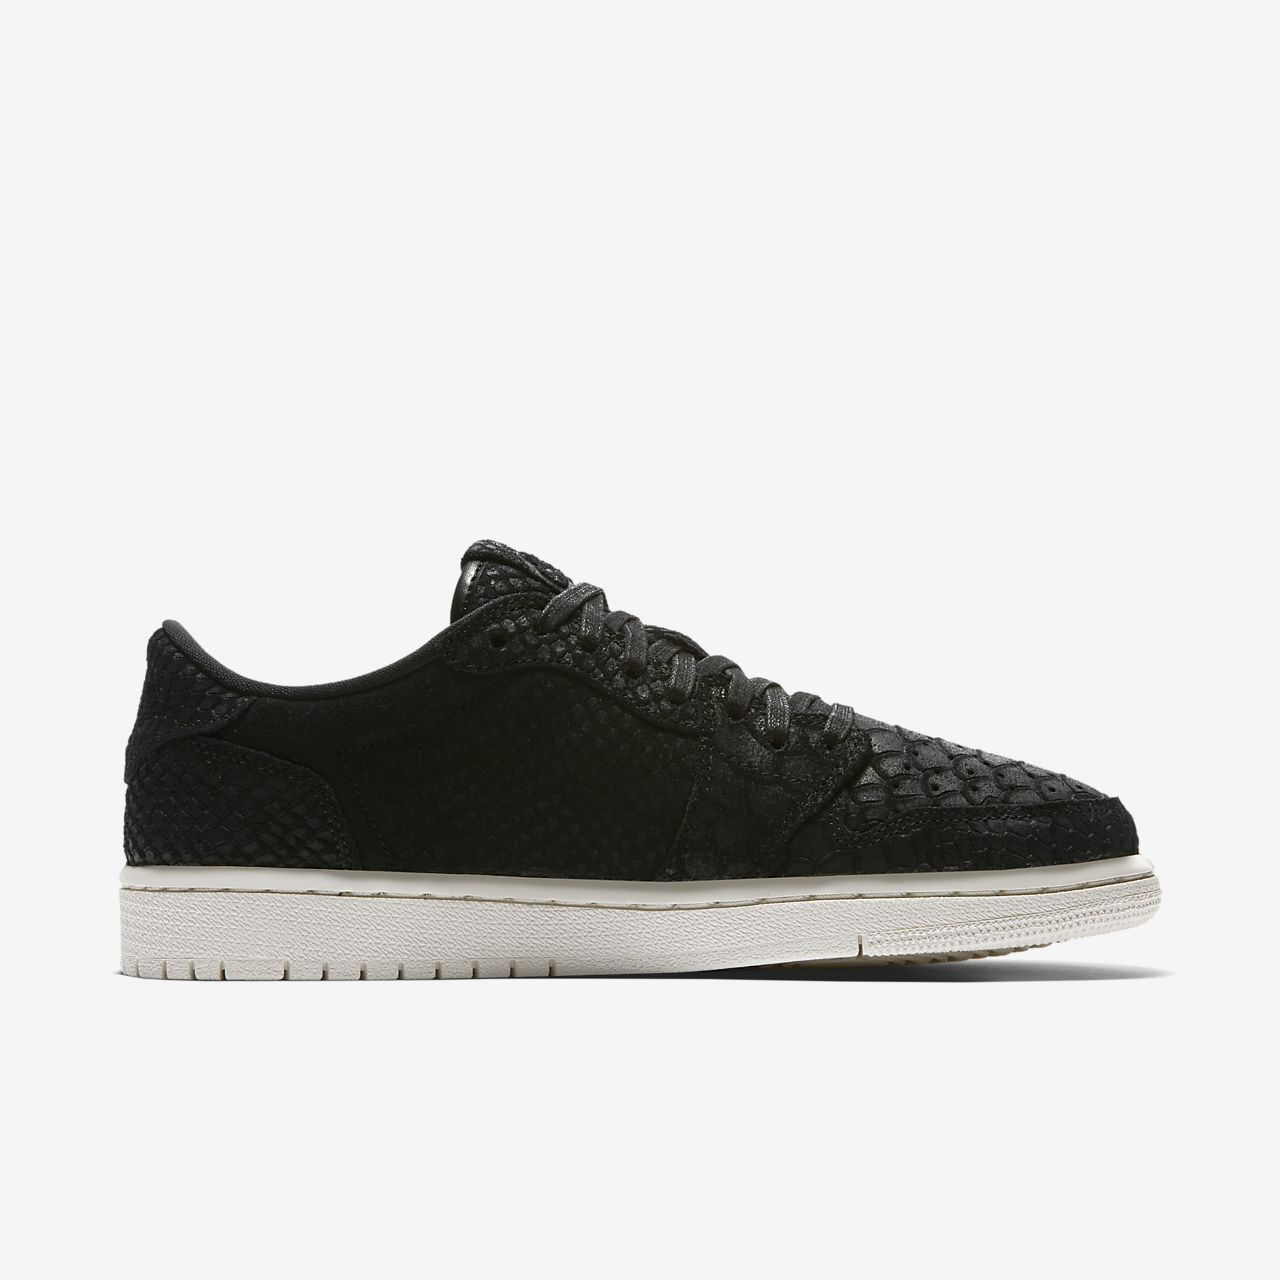 nike jordan 1 retro low nz